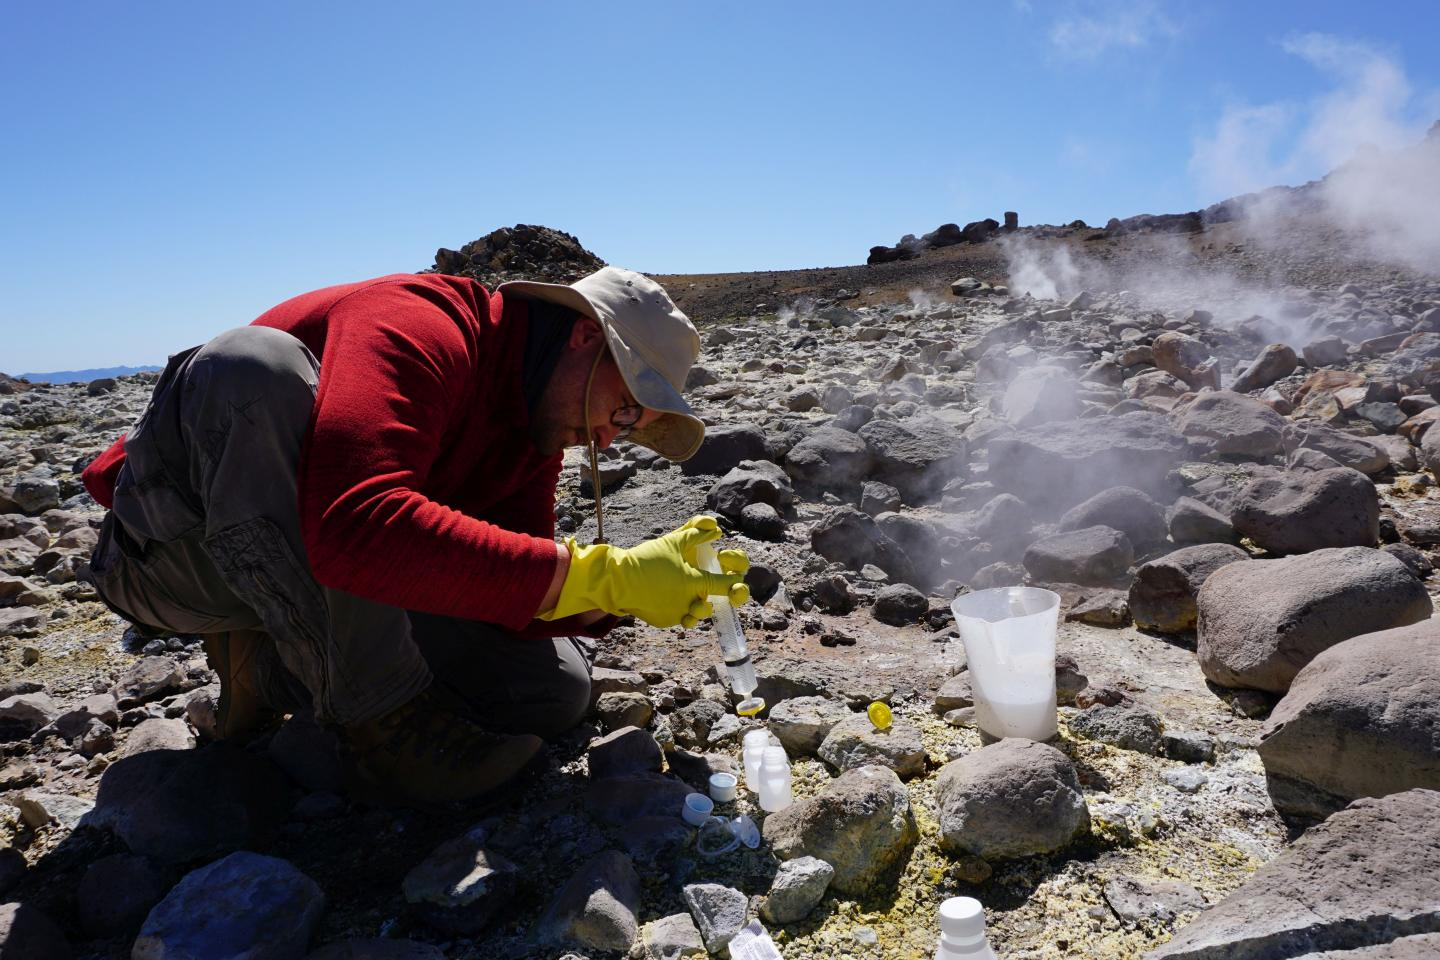 researchers of the BrineMine project are investigating the raw-materials potential of thermal wells in Chile